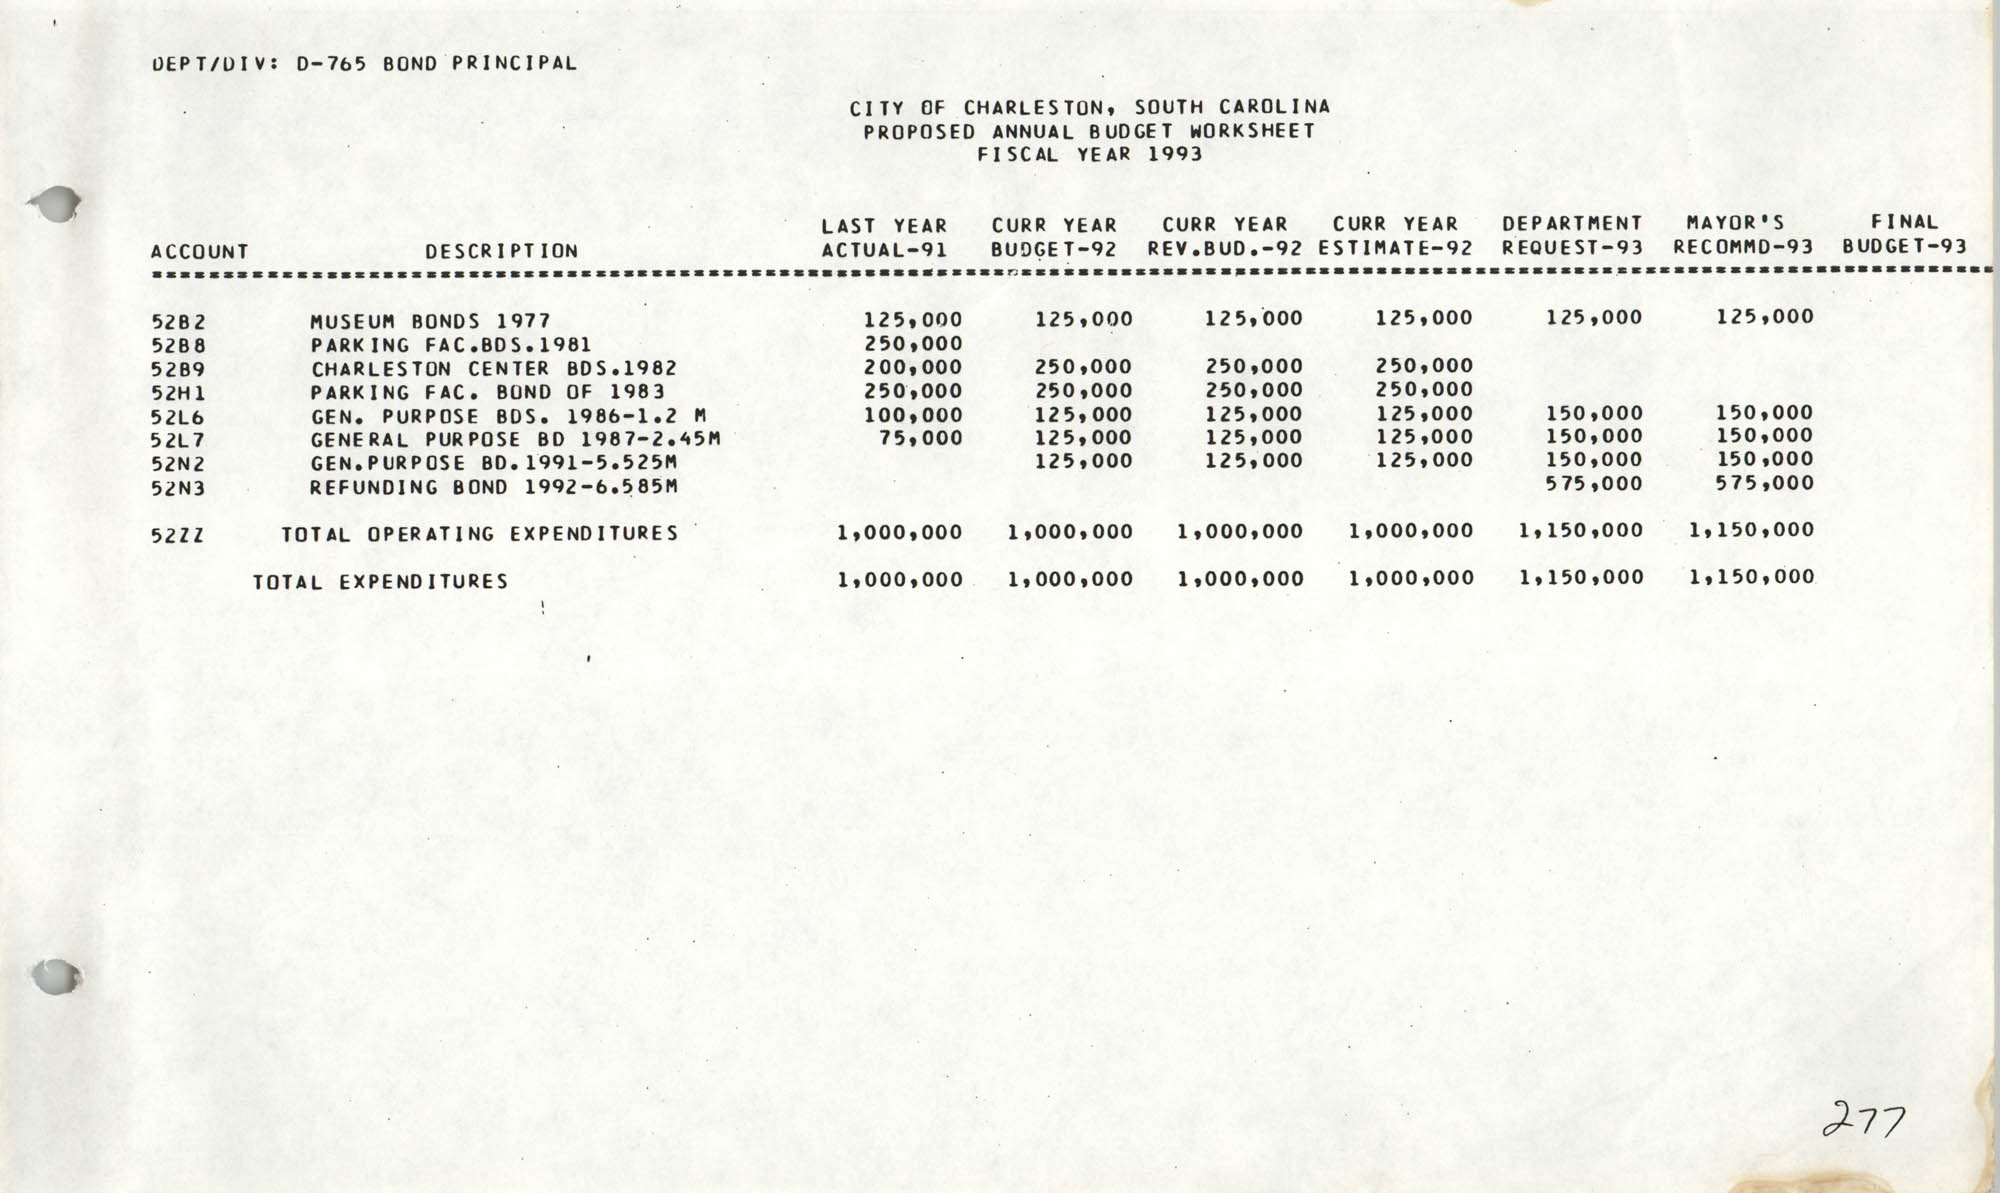 The City Council of Charleston, South Carolina, 1993 Budget, Page 277